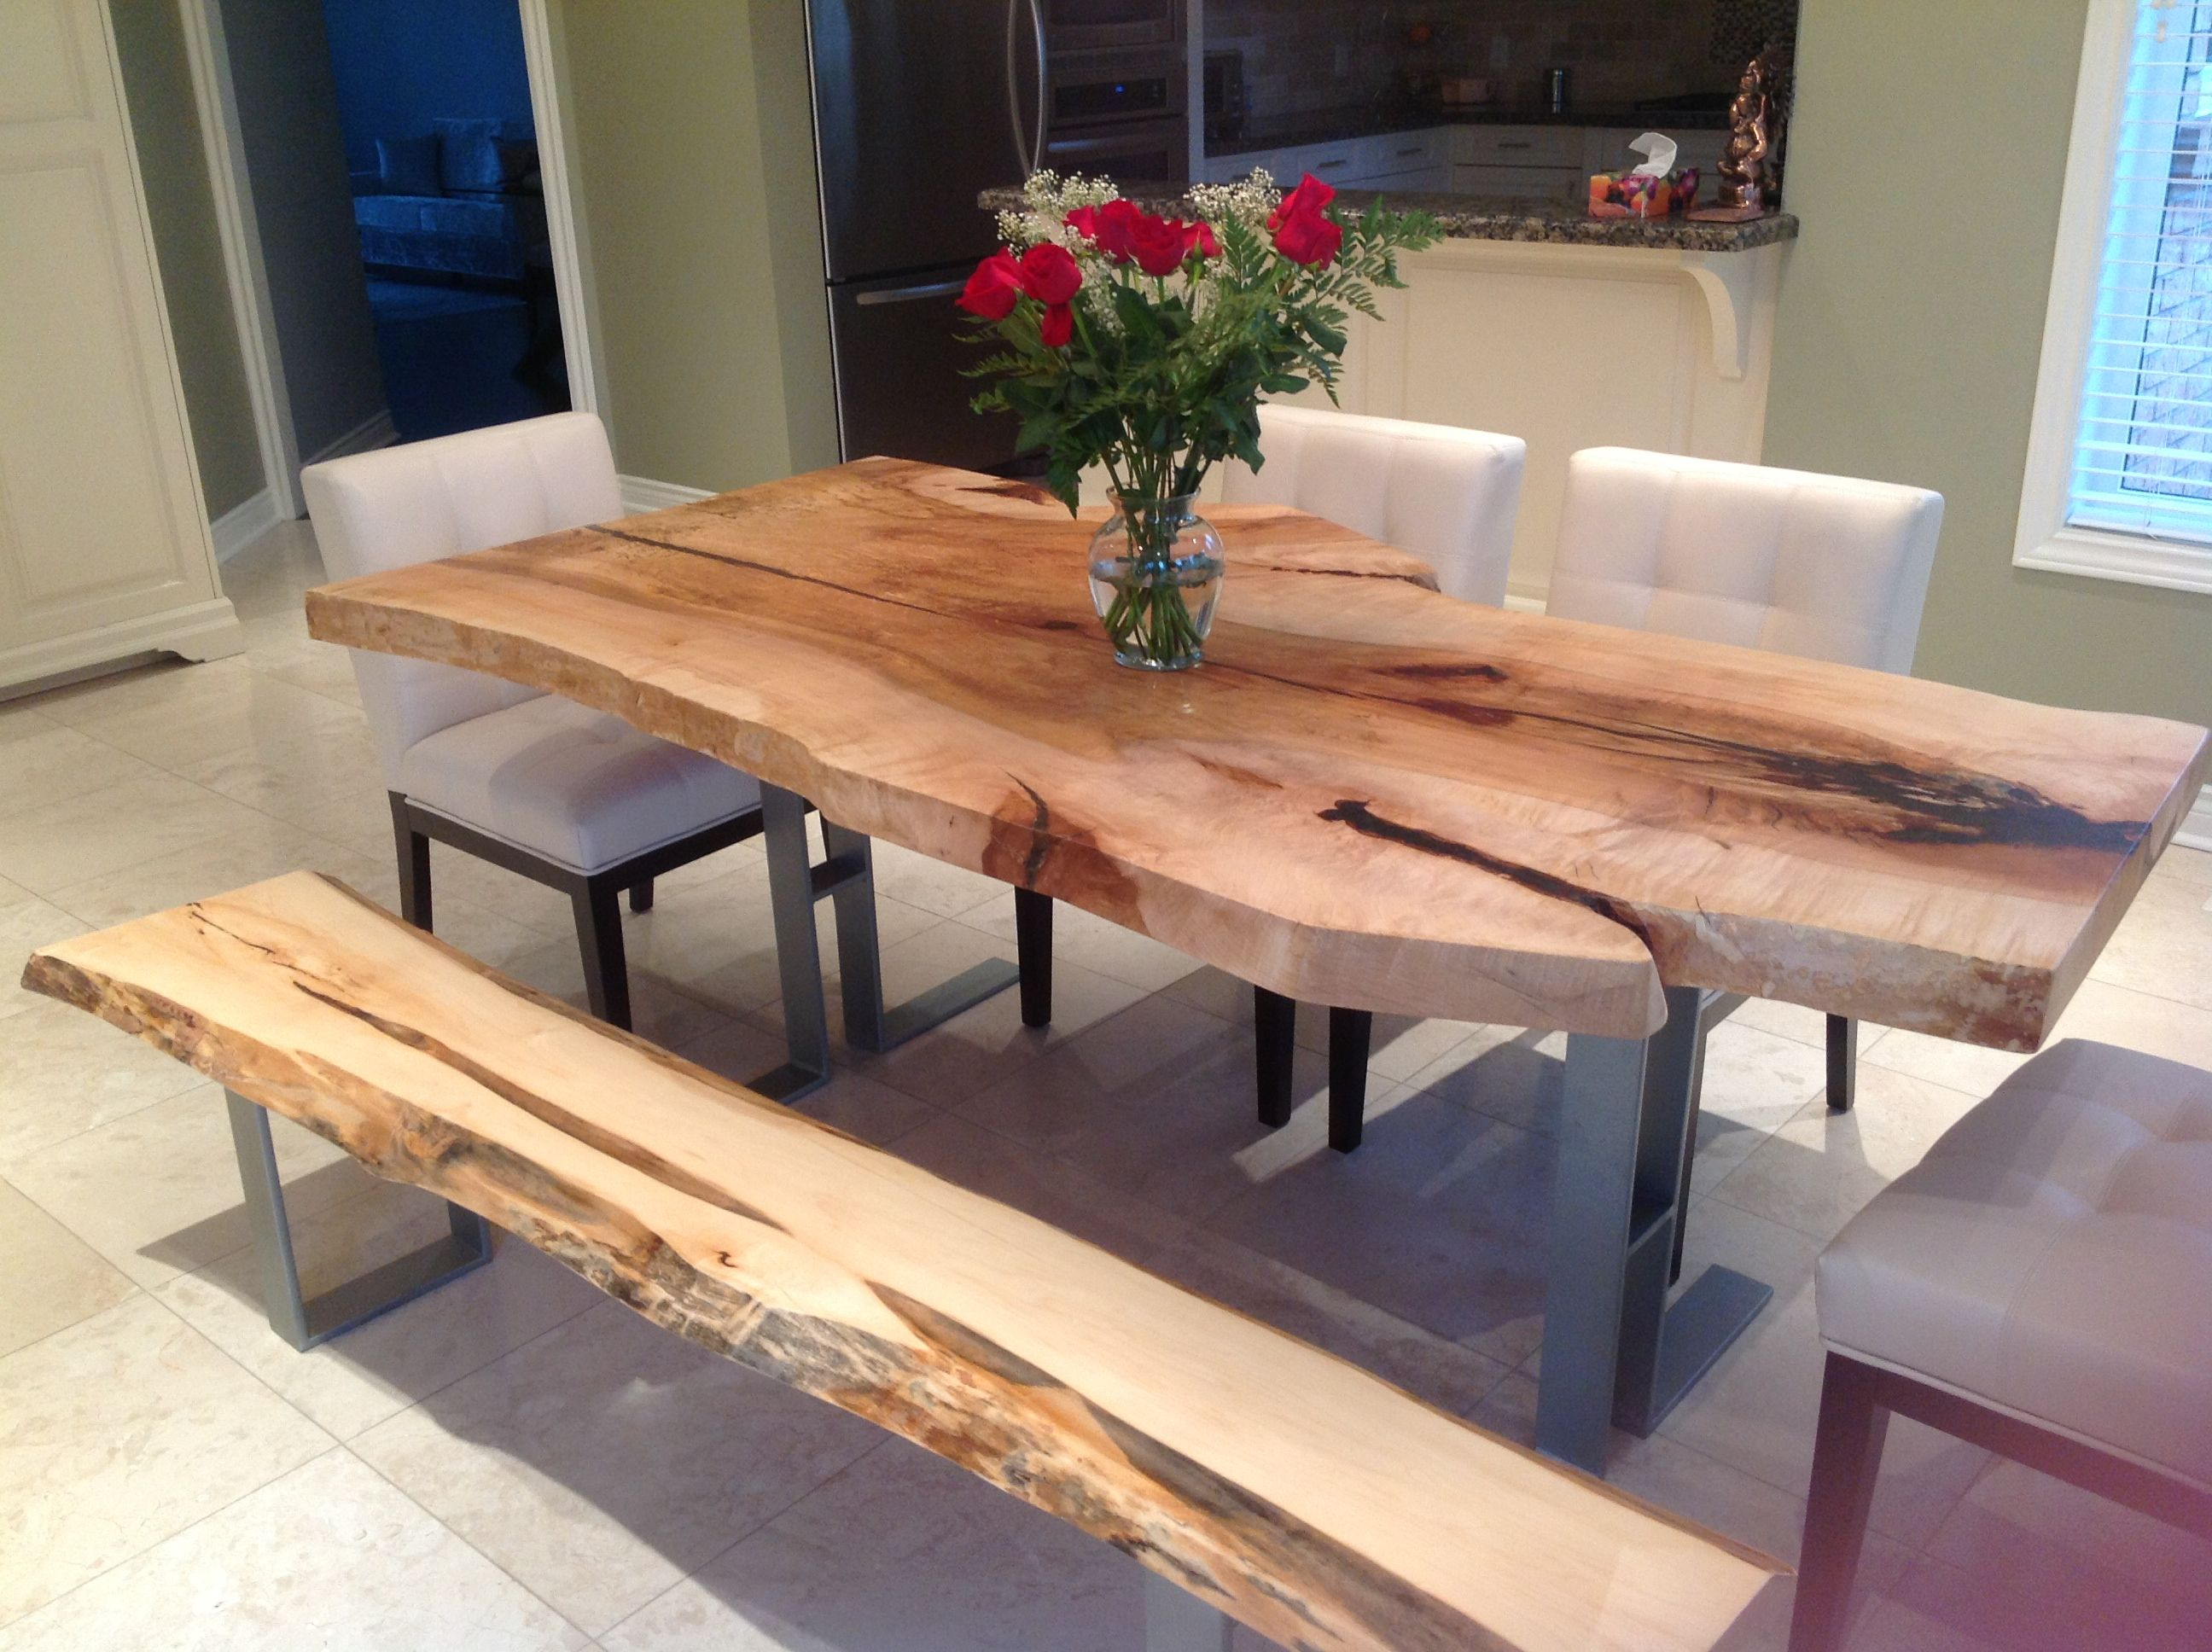 Live Edge Dining Table Inspiration For Your Dining Room | Dining Room  Design, Dining Room Table And Black Wooden Chairs